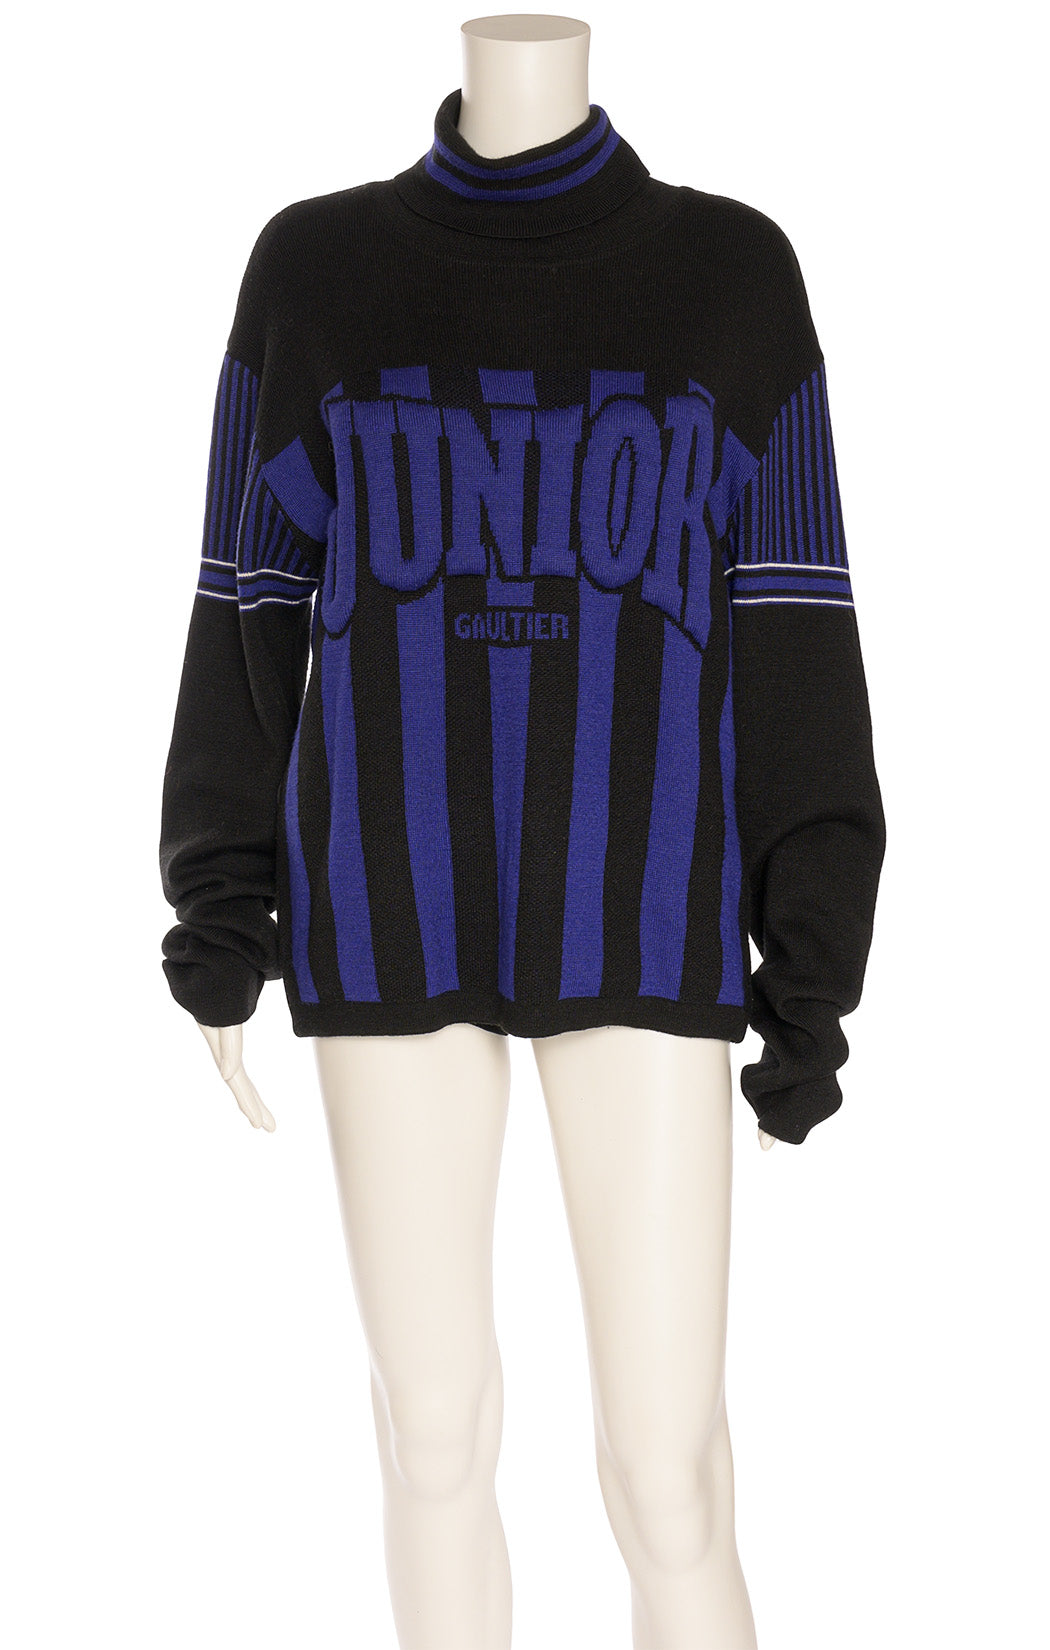 Black and purple turtleneck sweater with front logo with stripes on long sleeves